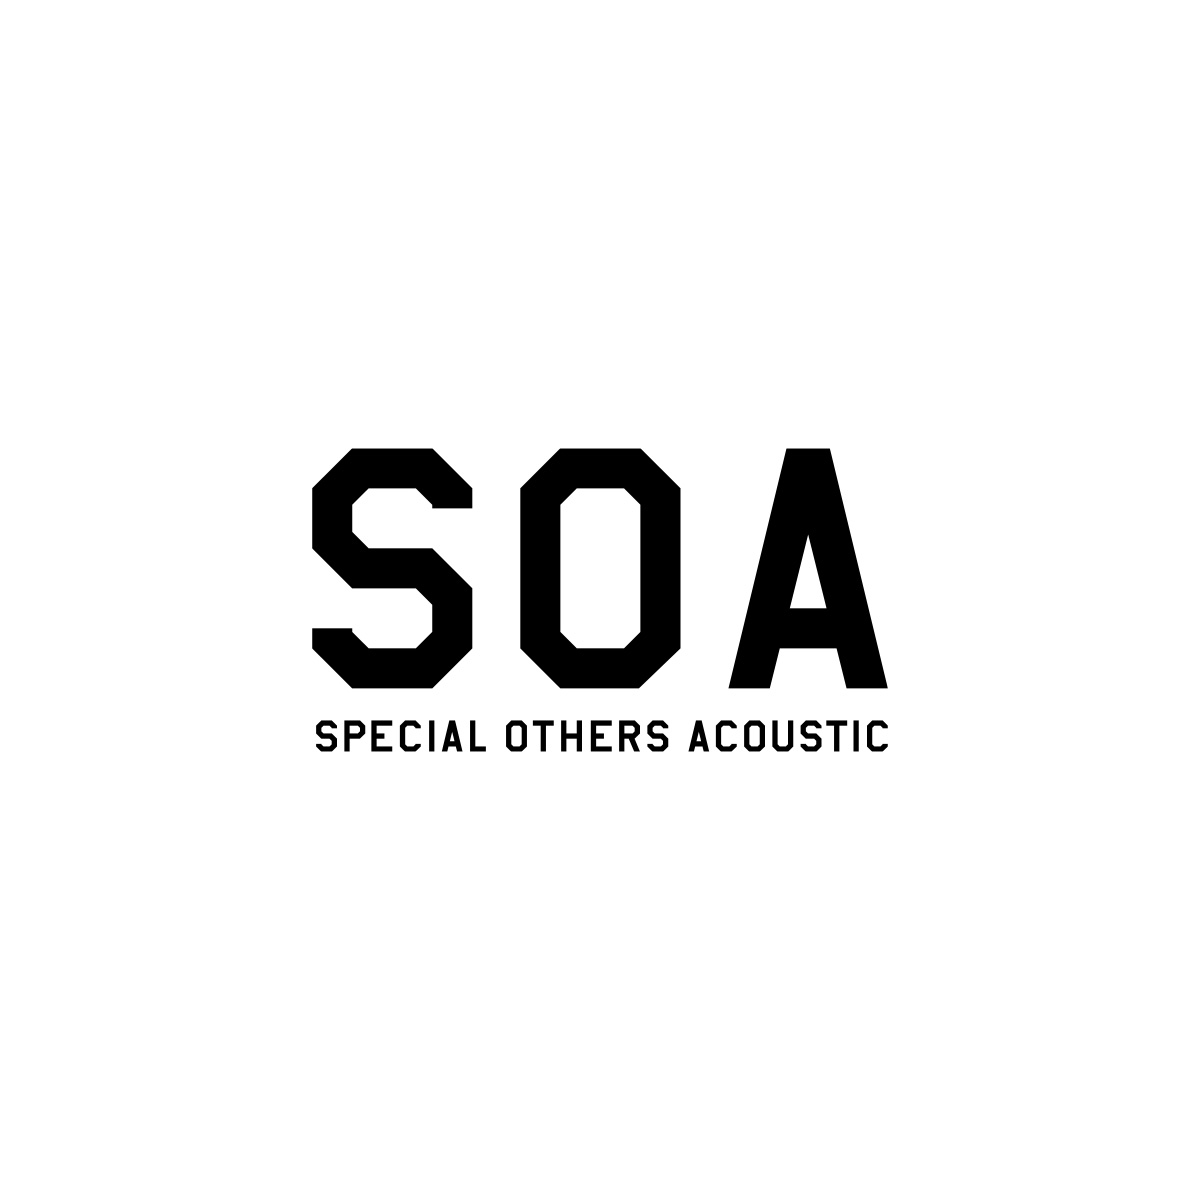 SPECIAL OTHERS ACOUSTIC official website